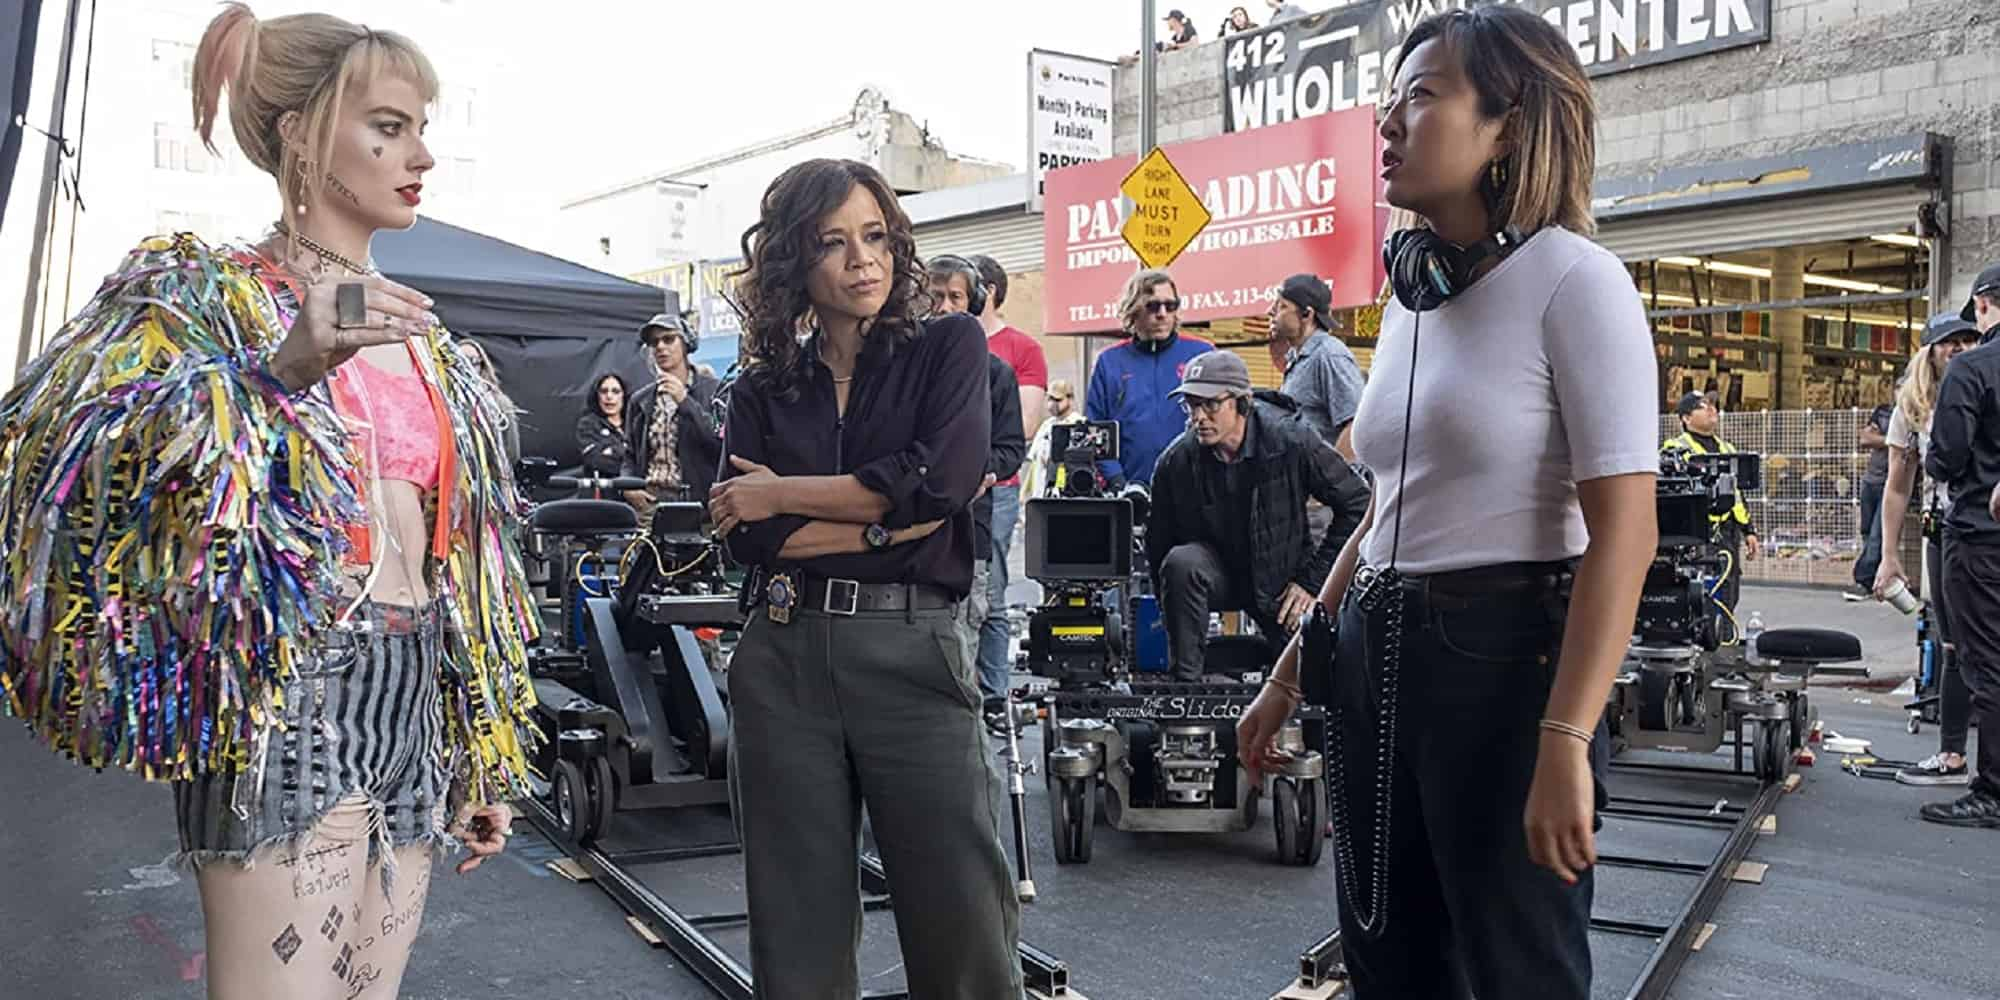 Cathy Yan Audiences Weren't Ready for Birds of Prey Featured via WB